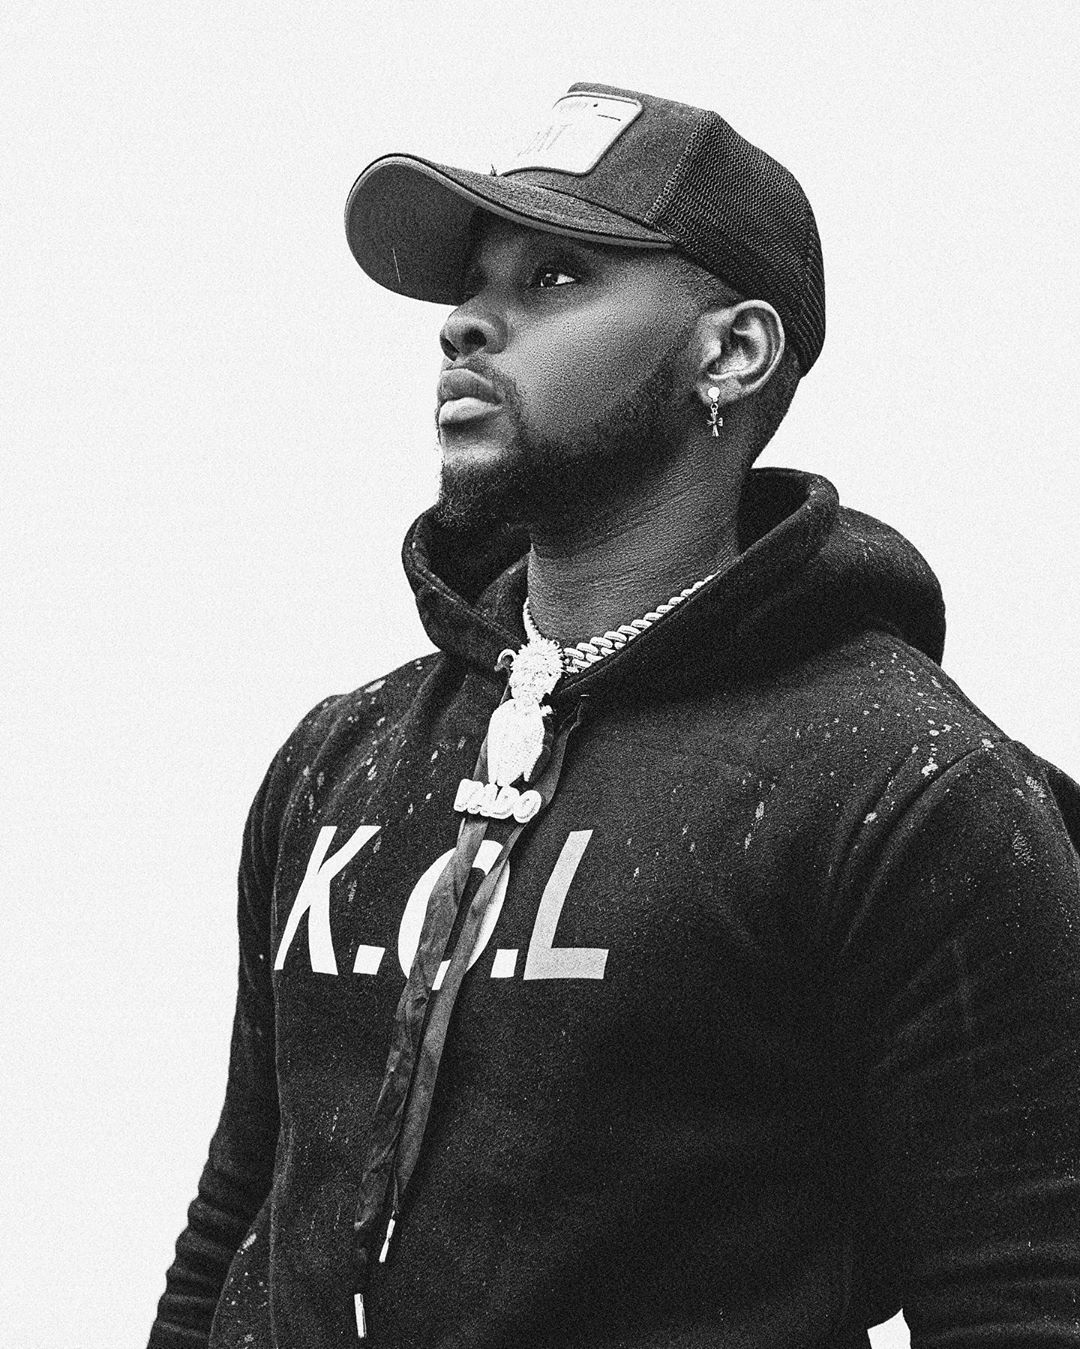 Kizz Daniel returns to Social Media, set to drop a new album, King of Love (KOL)